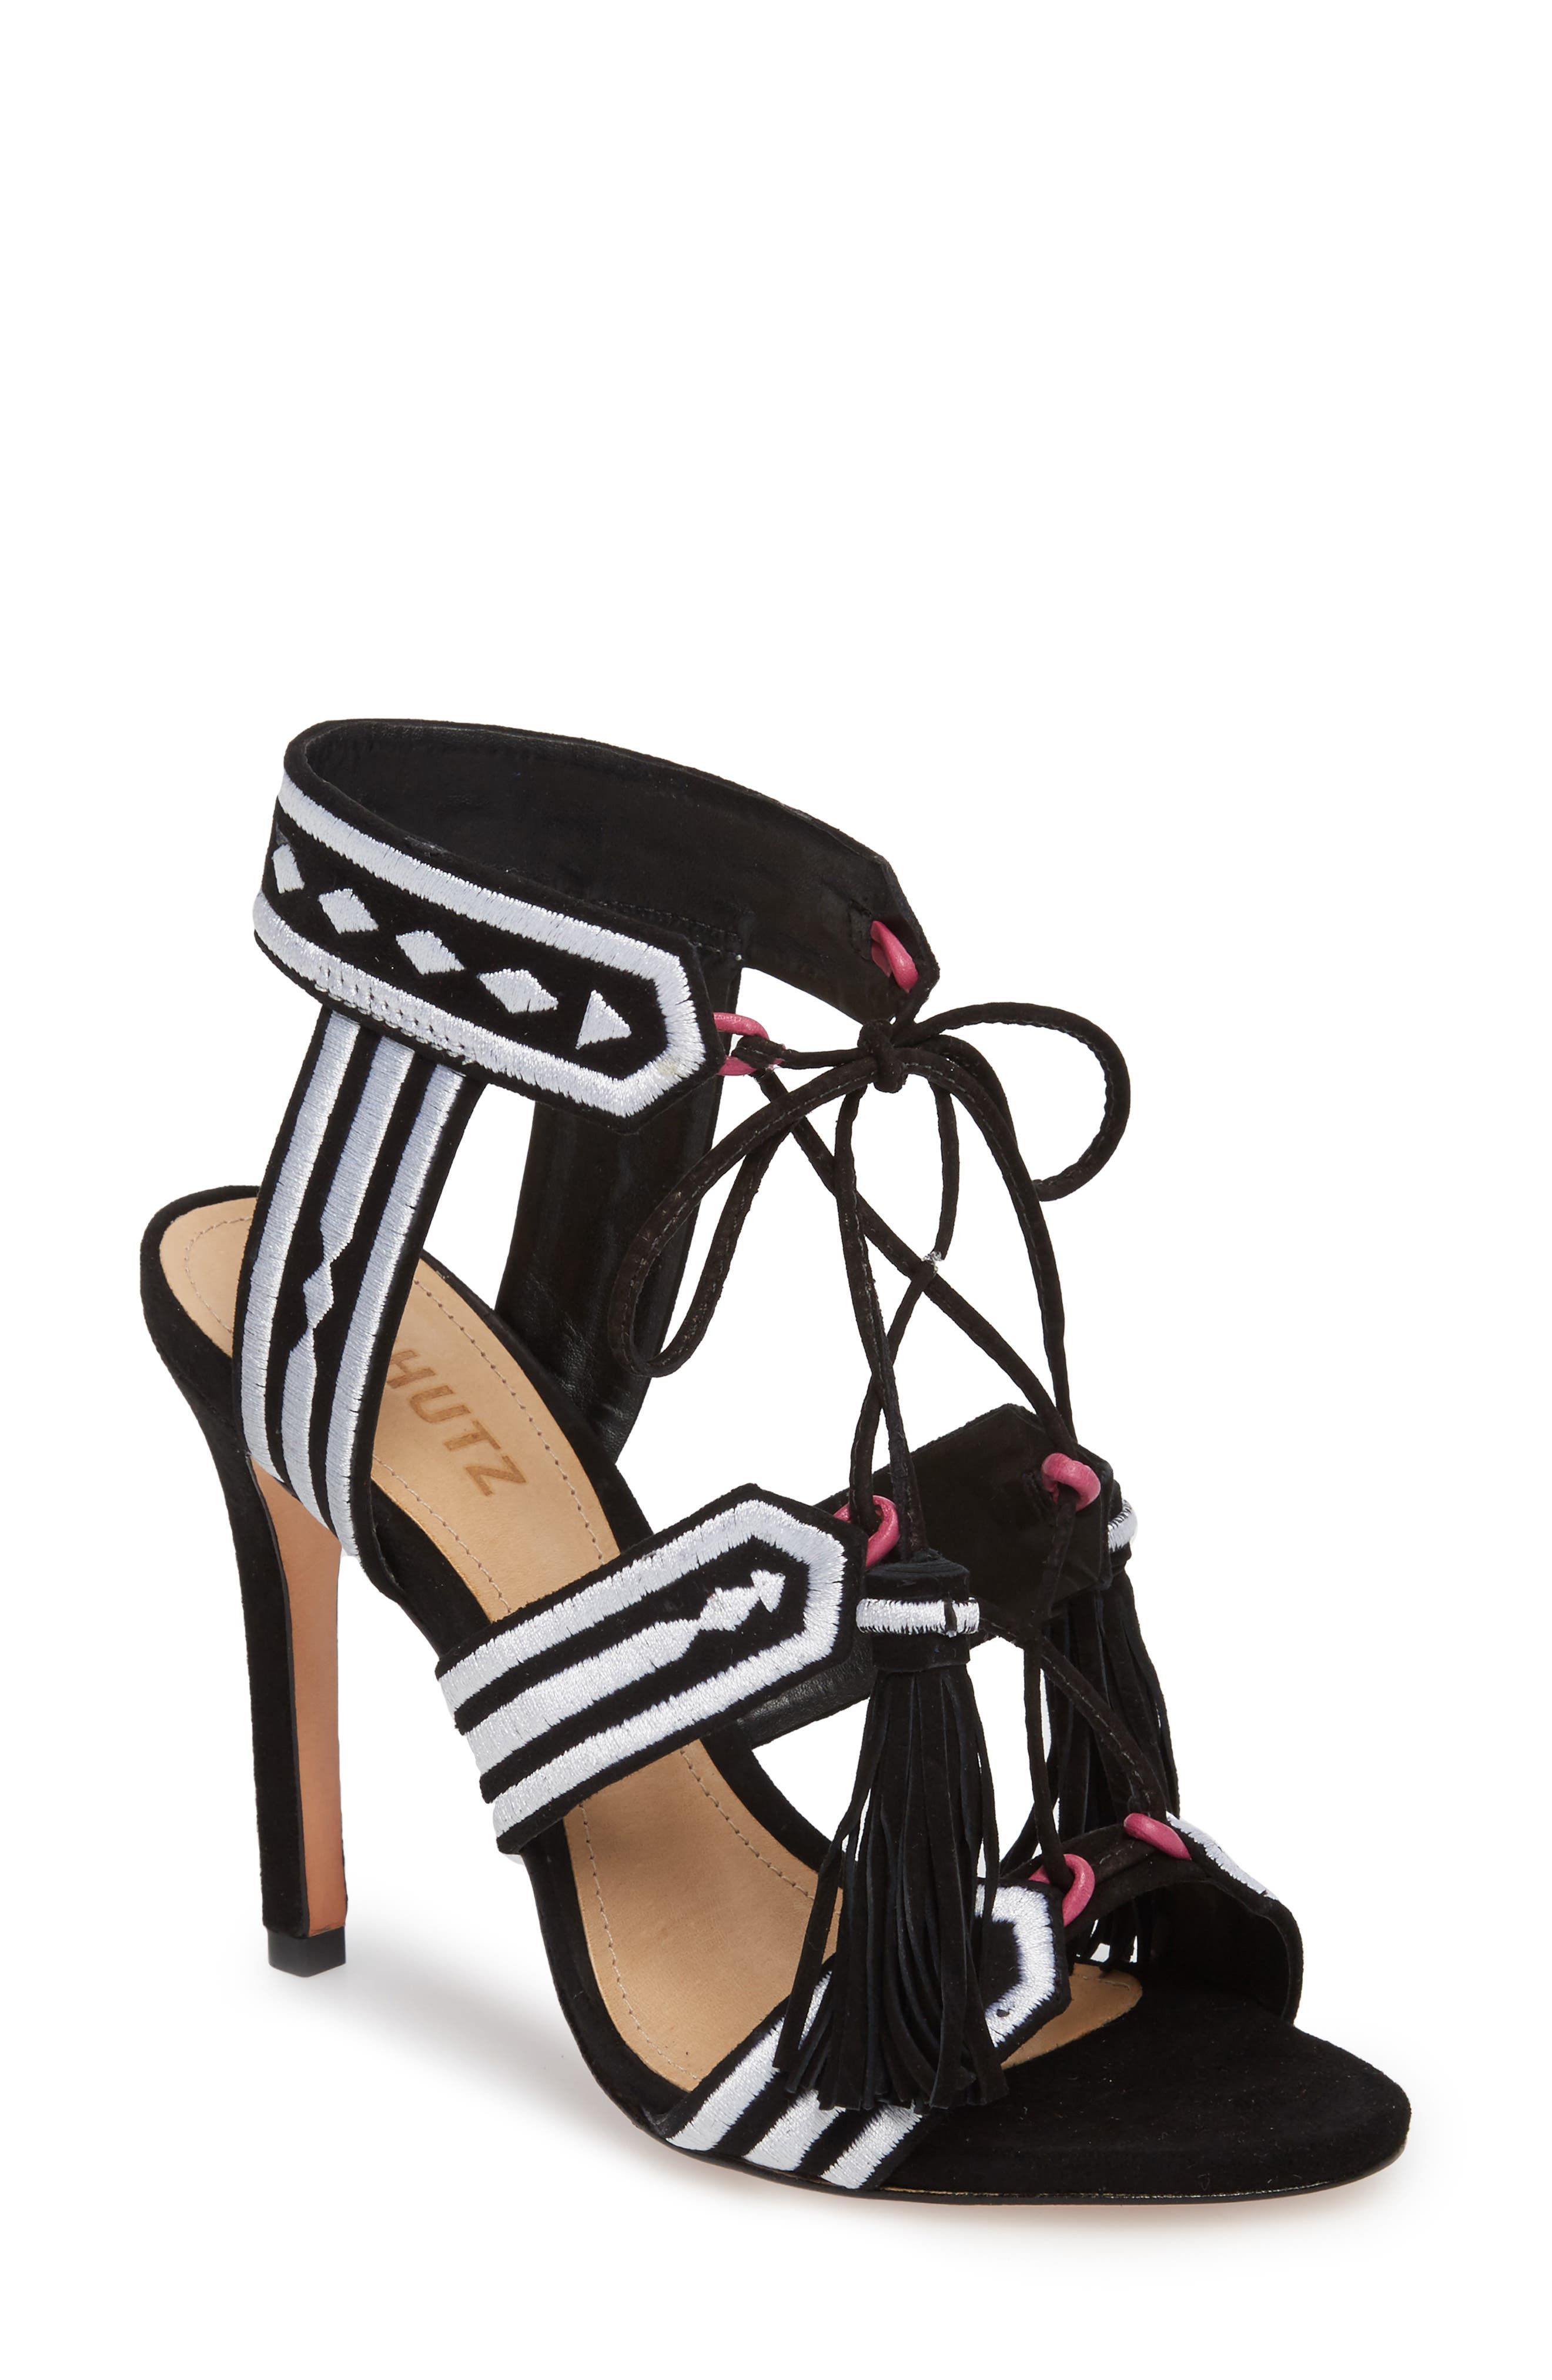 Eurica Embroidered Tassel Sandal,                             Main thumbnail 1, color,                             Black Suede